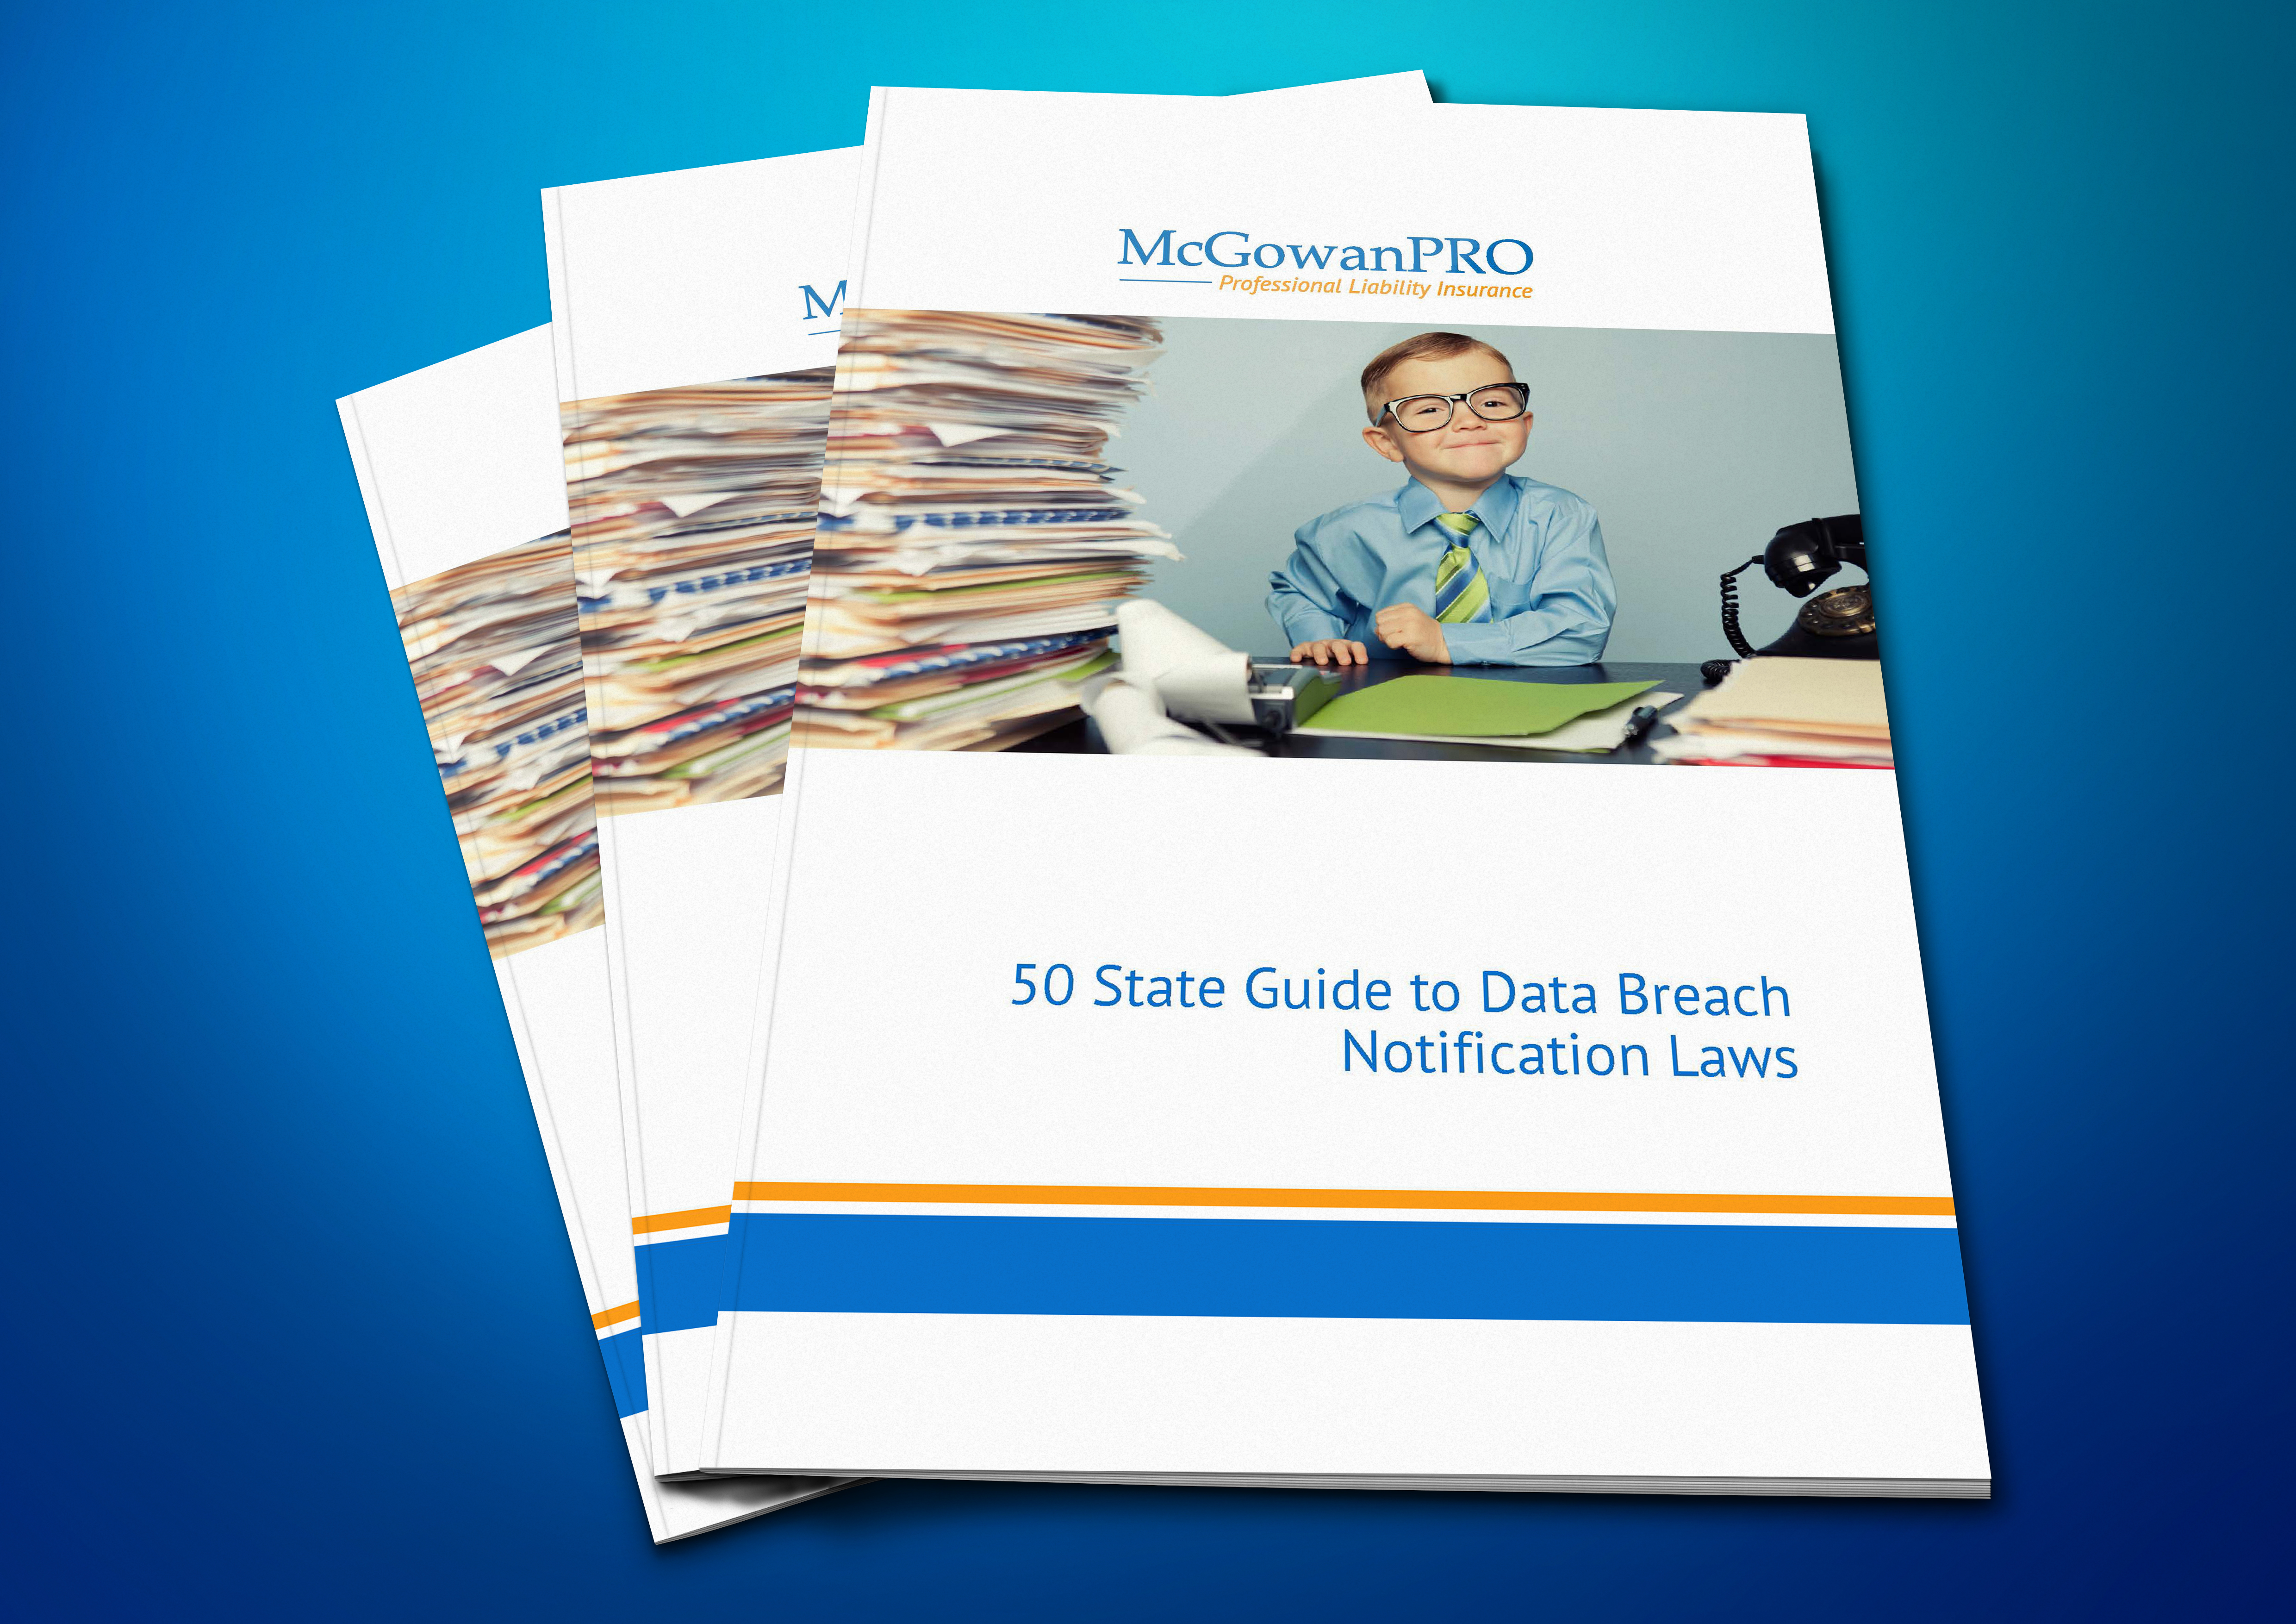 McGPro_50-state-guide-cybersecurity-laws_eBook_LandingPage